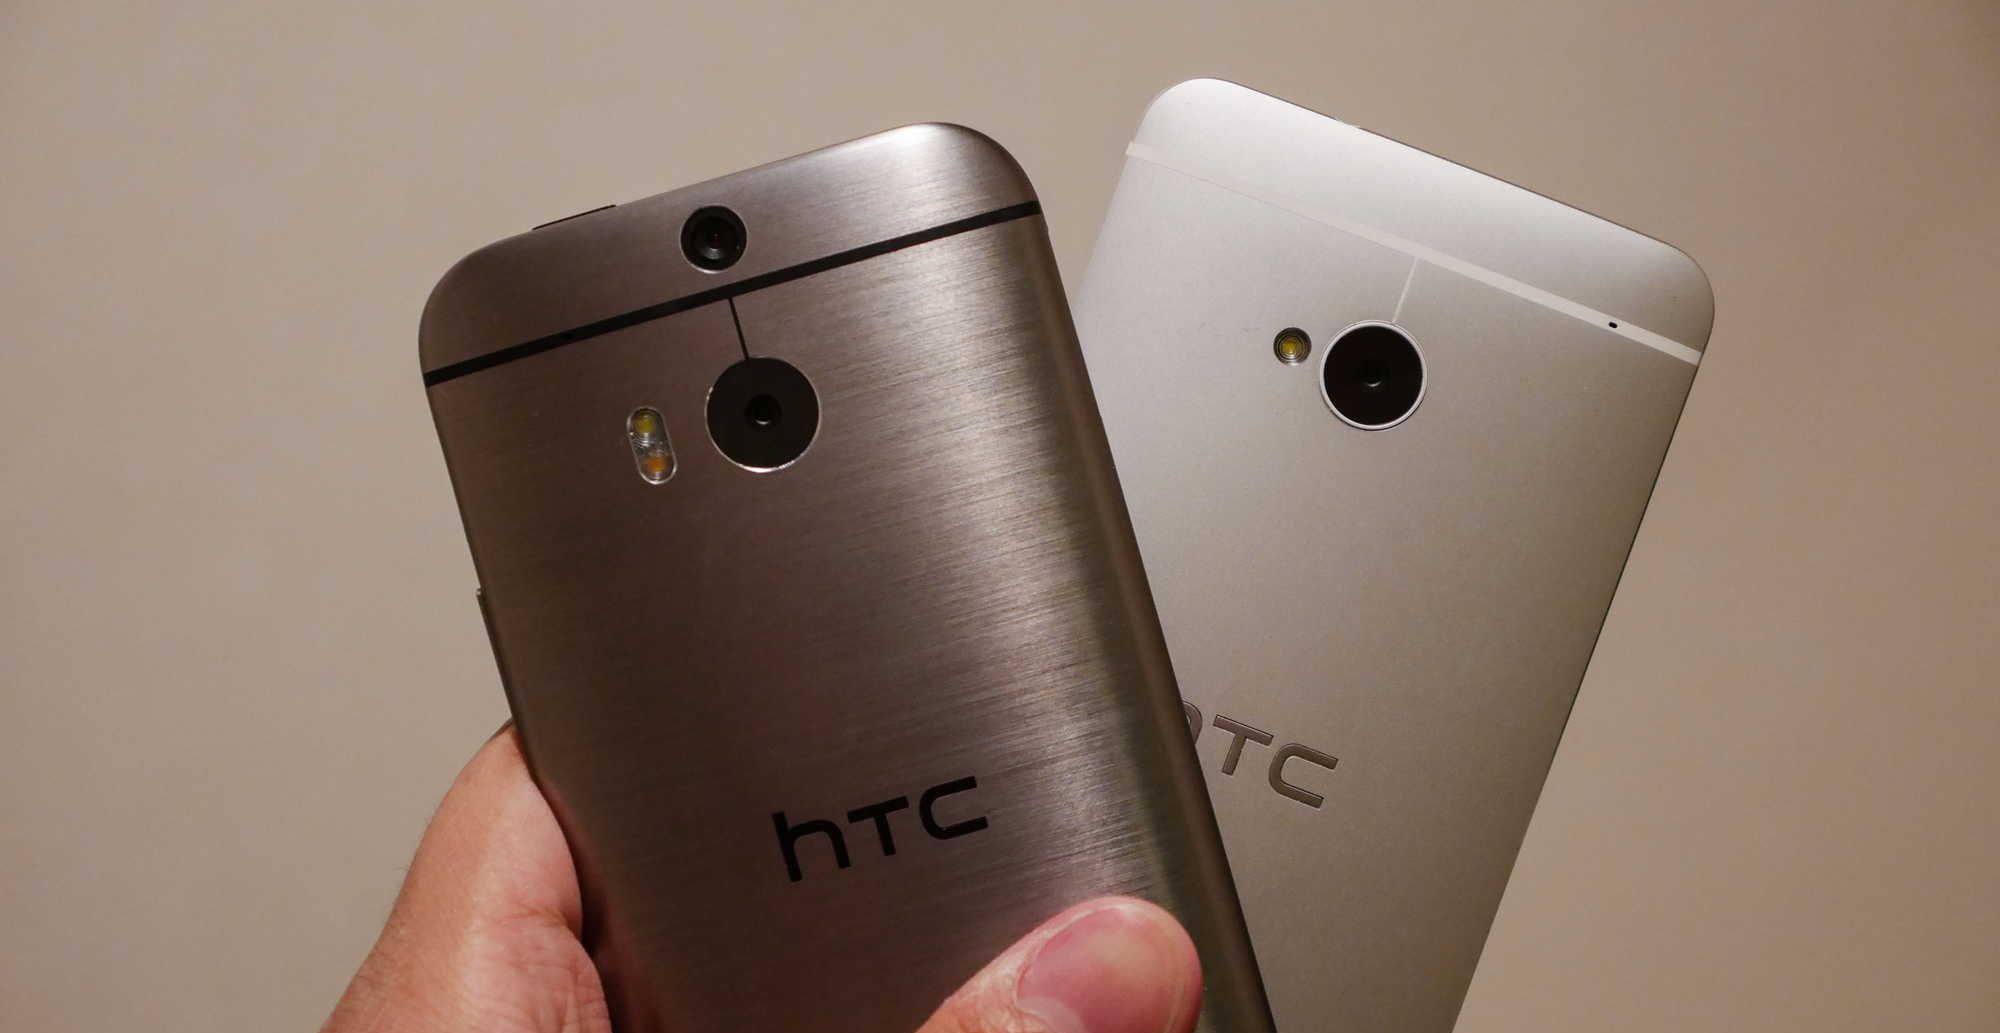 HTC One M8 et M7